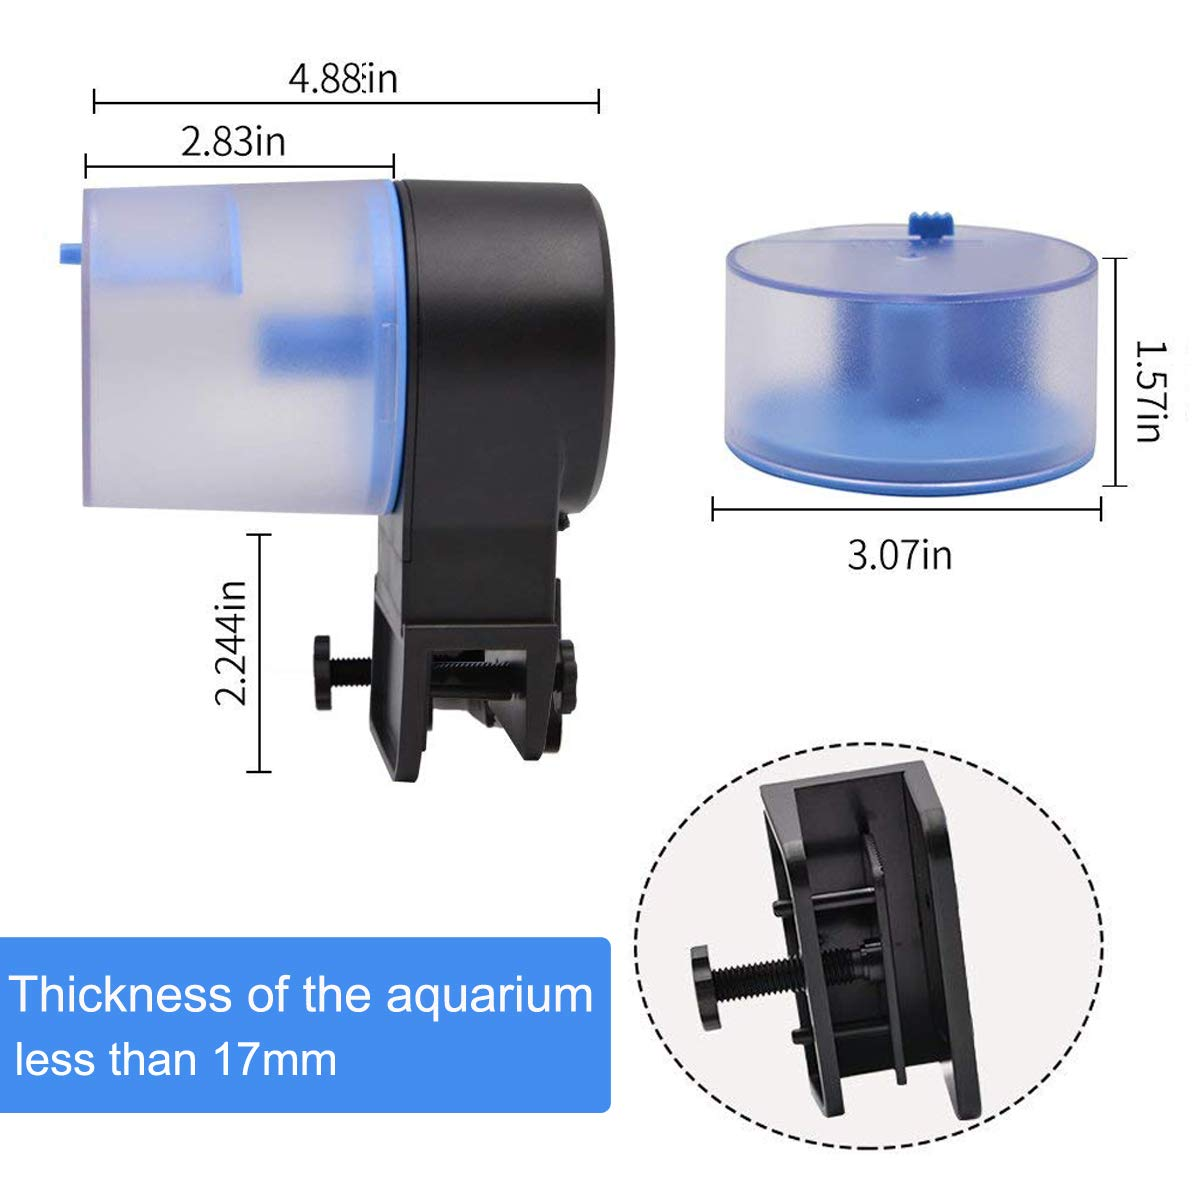 Aollan Automatic Fish Feeder Turtle Feeder Turtle Feeder Powered by USB DC 5V or Battery Programmable Food Dispenser for Fish and Turtle by Aollan (Image #4)